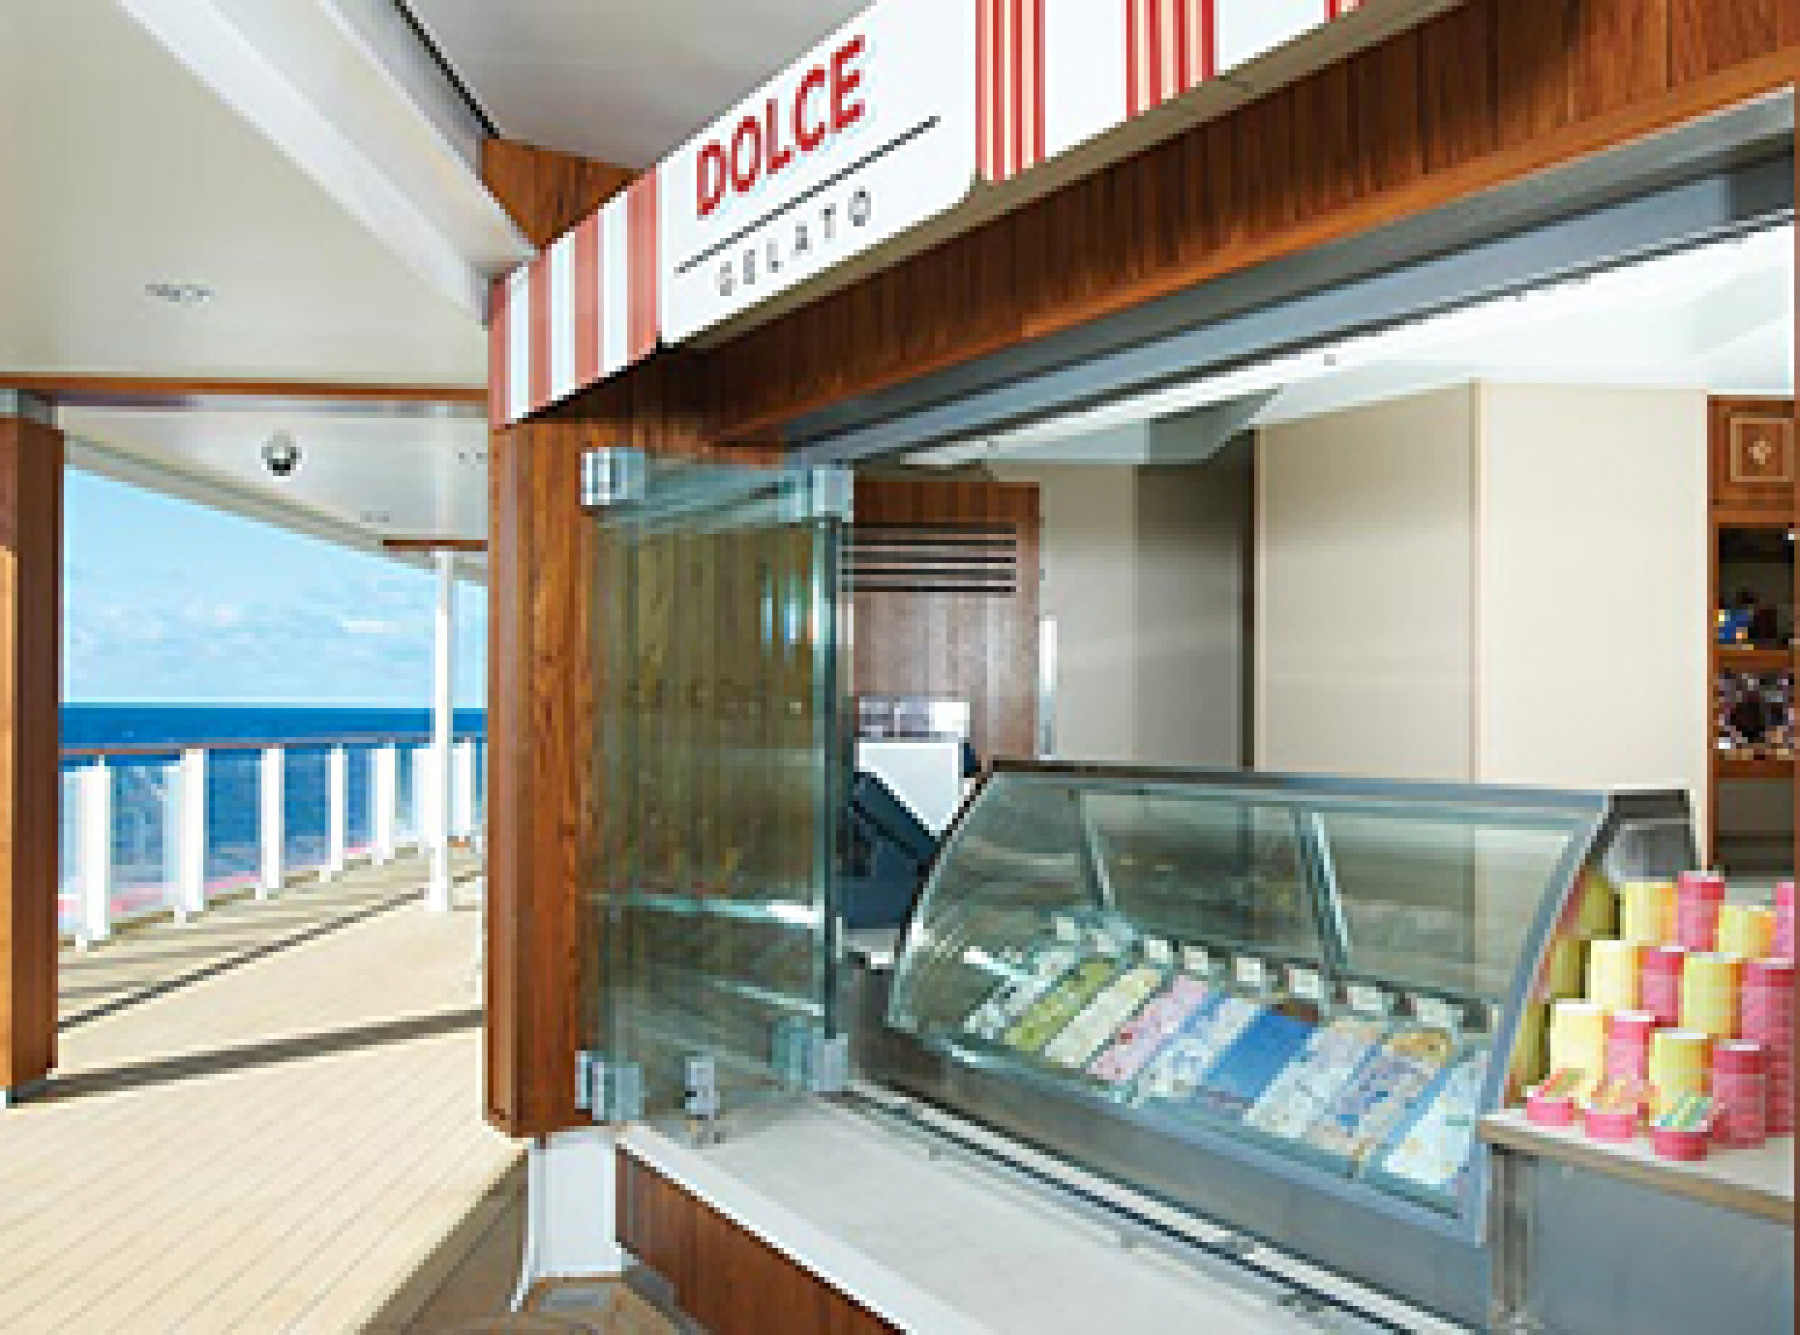 Norwegian Cruise Line Norwegian Breakaway Interior Dolce Gelato.jpg